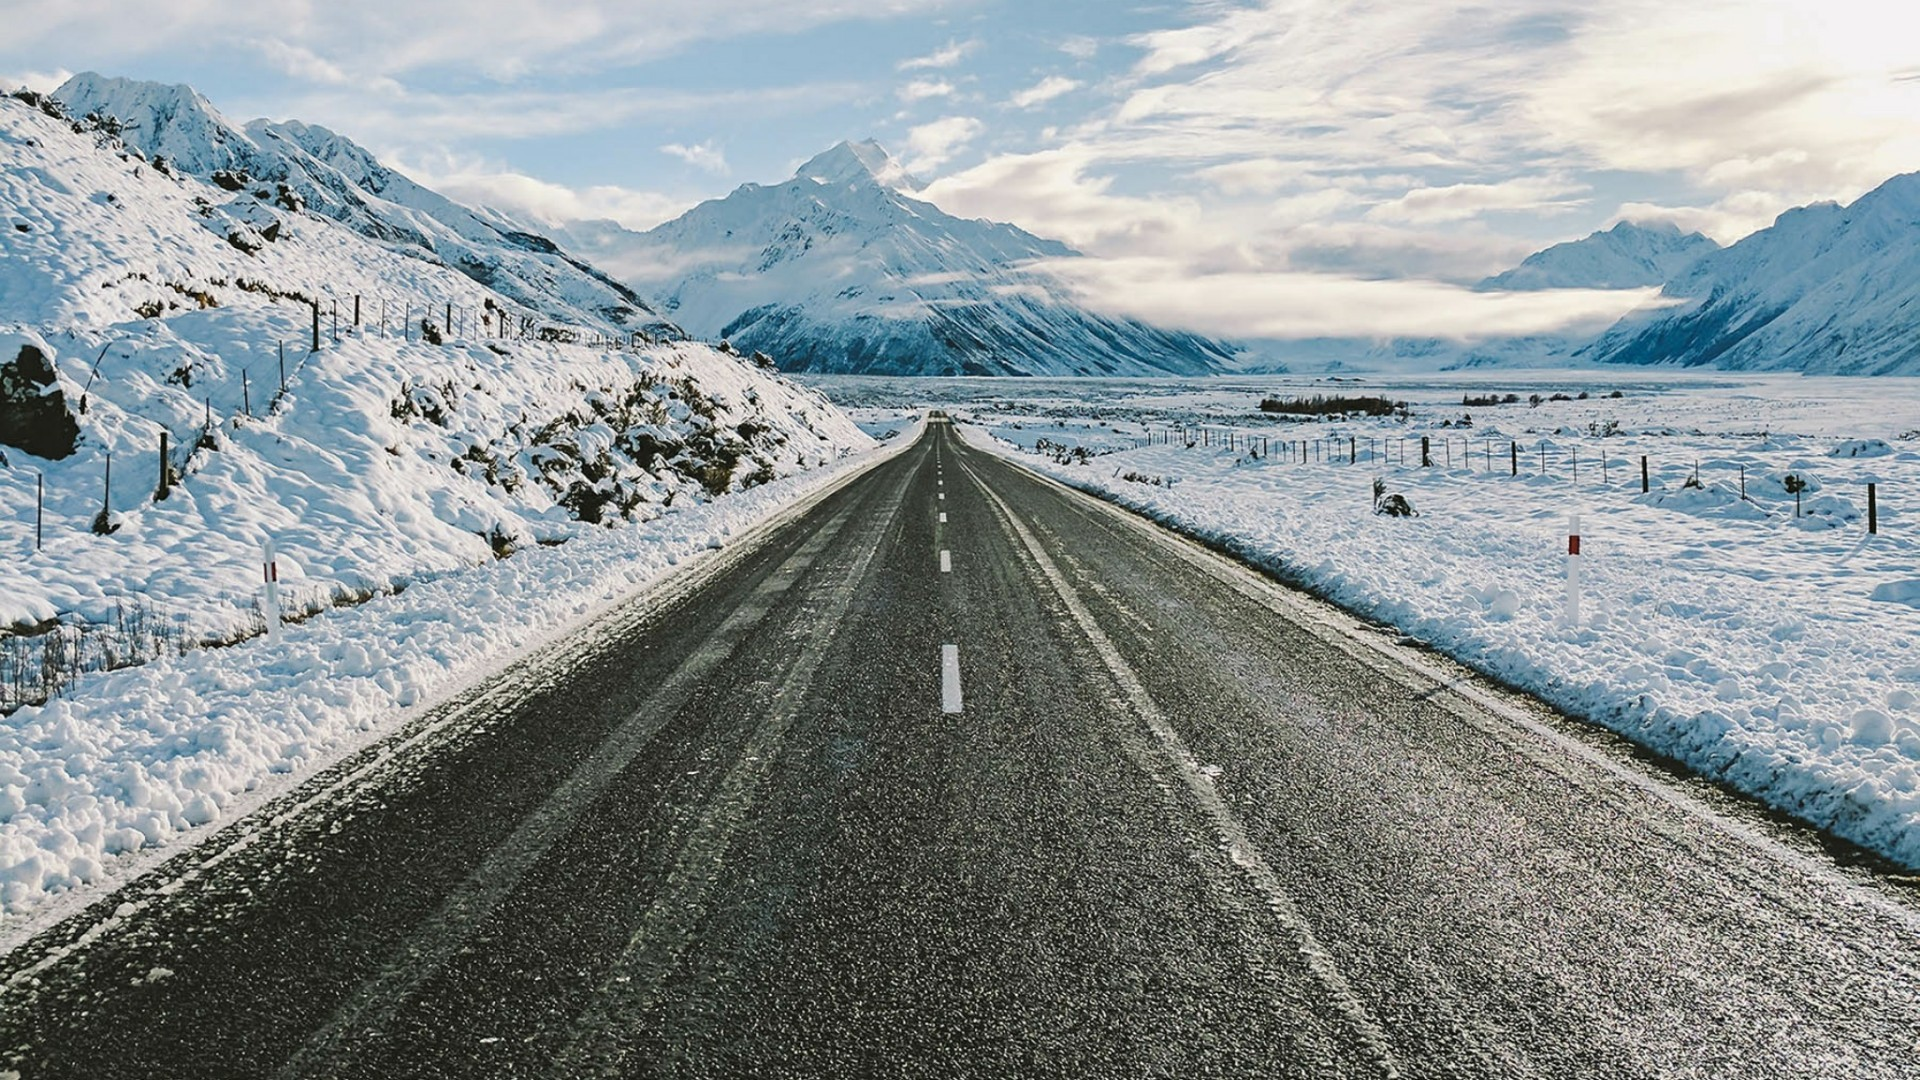 Res: 1920x1080, Road Towards The Snowy Mountains Wallpaper | Wallpaper Studio 10 | Tens of  thousands HD and UltraHD wallpapers for Android, Windows and Xbox